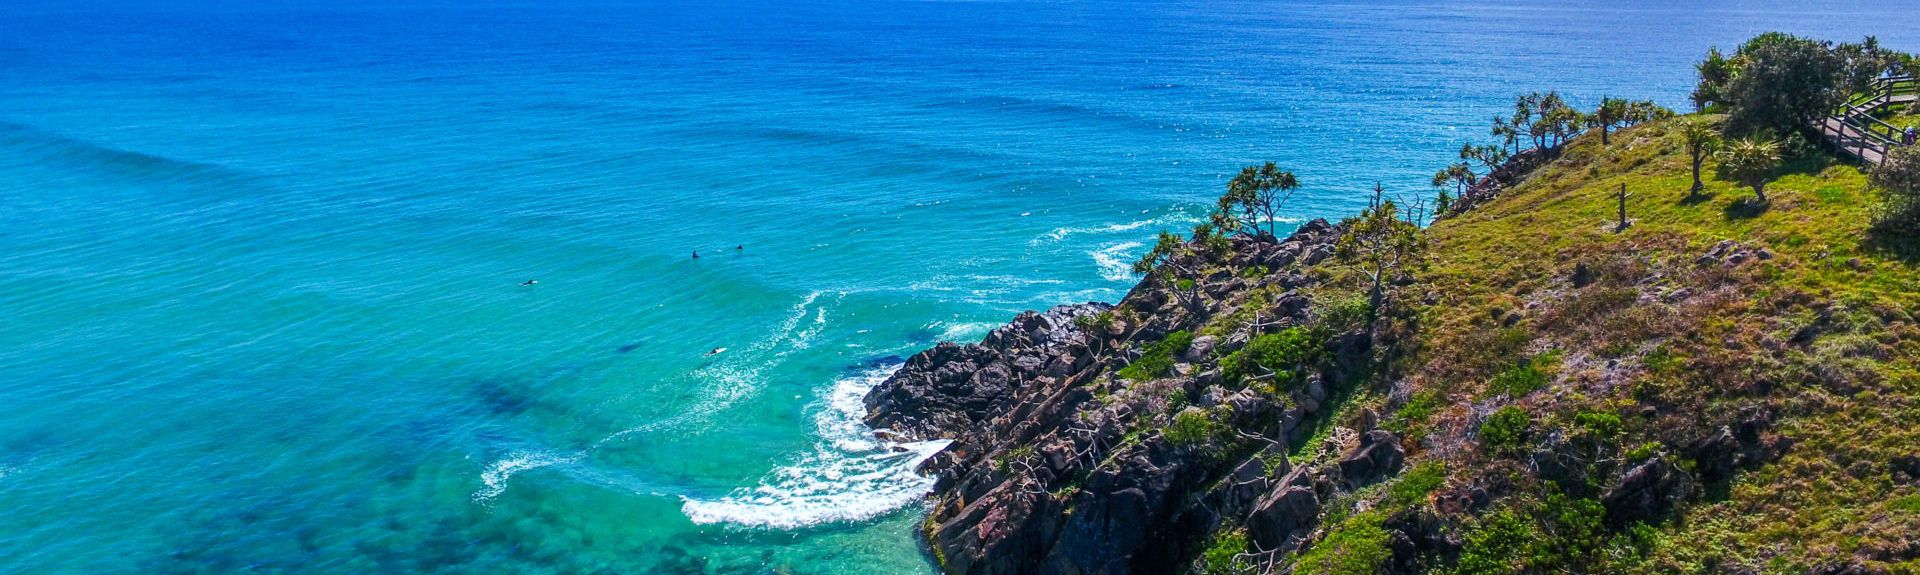 Point Danger, Tweed Heads, New South Wales, Australia